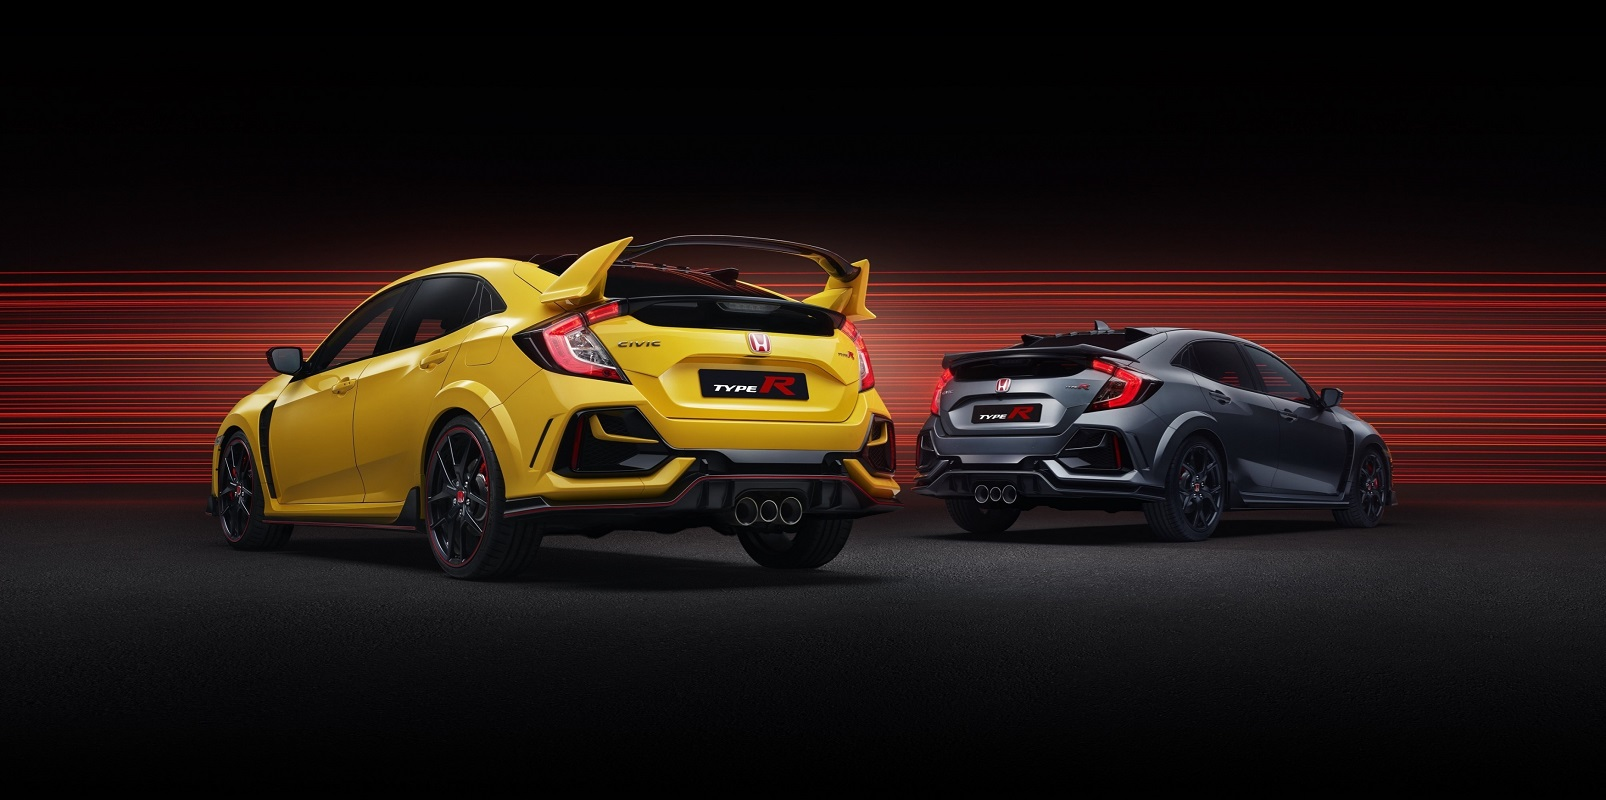 Honda Civic Type R Limited Edition and Sport Line